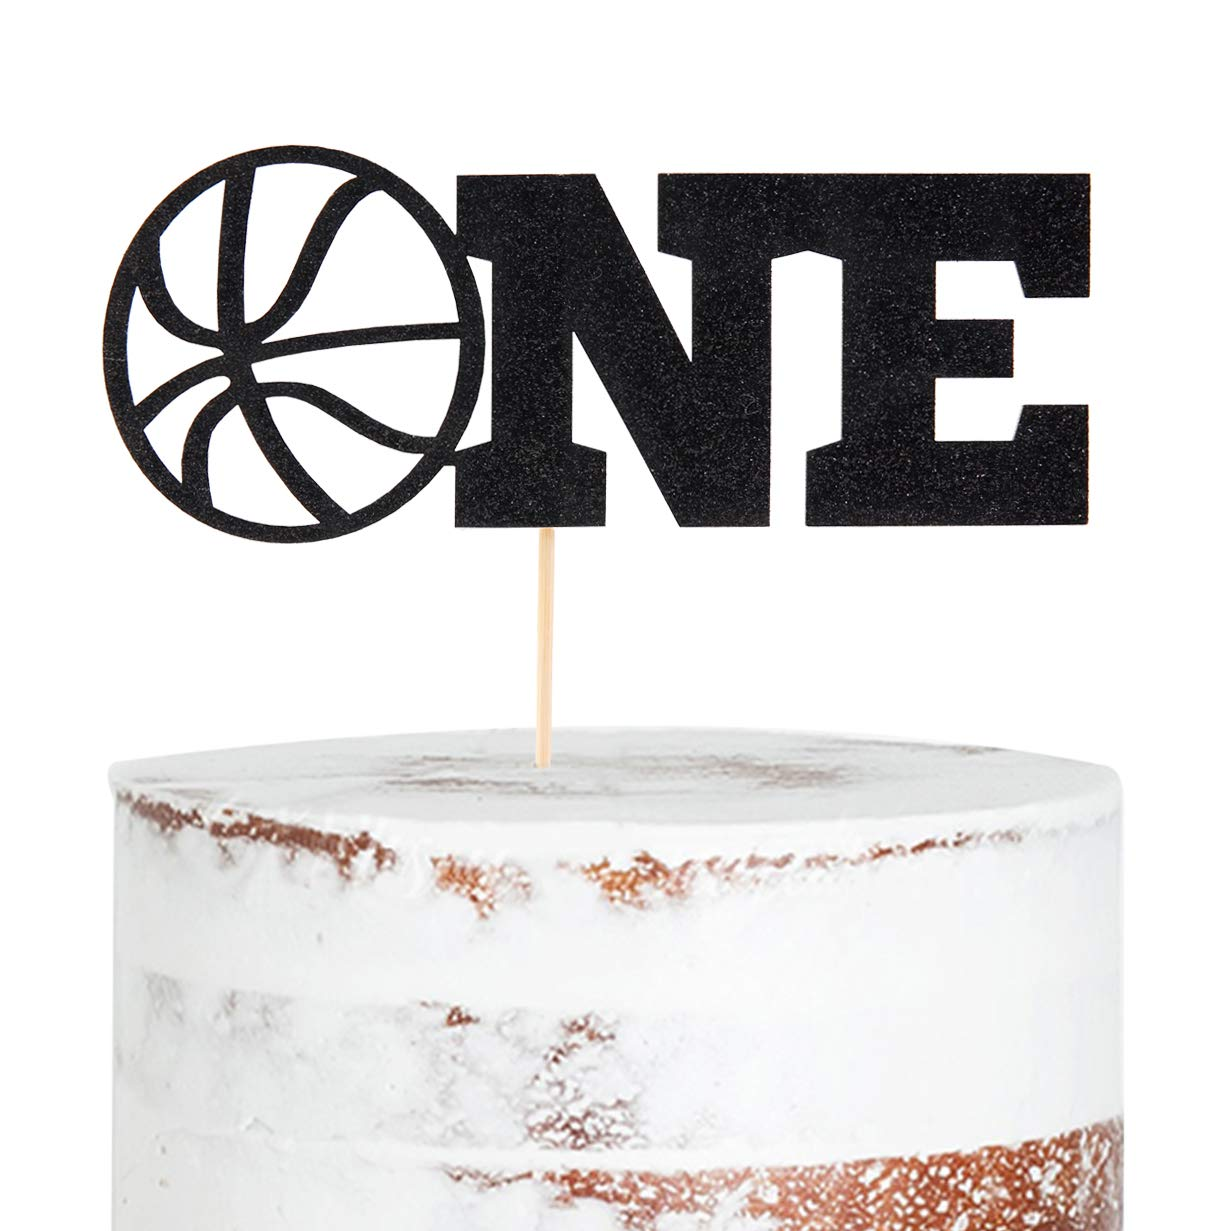 WAOUH Basketball ONE Cake Topper - Golden Glitter Cake Topper for Birthday Party, Cake Decoration for Personalized, Photo Booth Props, Basketball Sign Cake Flag(Black)